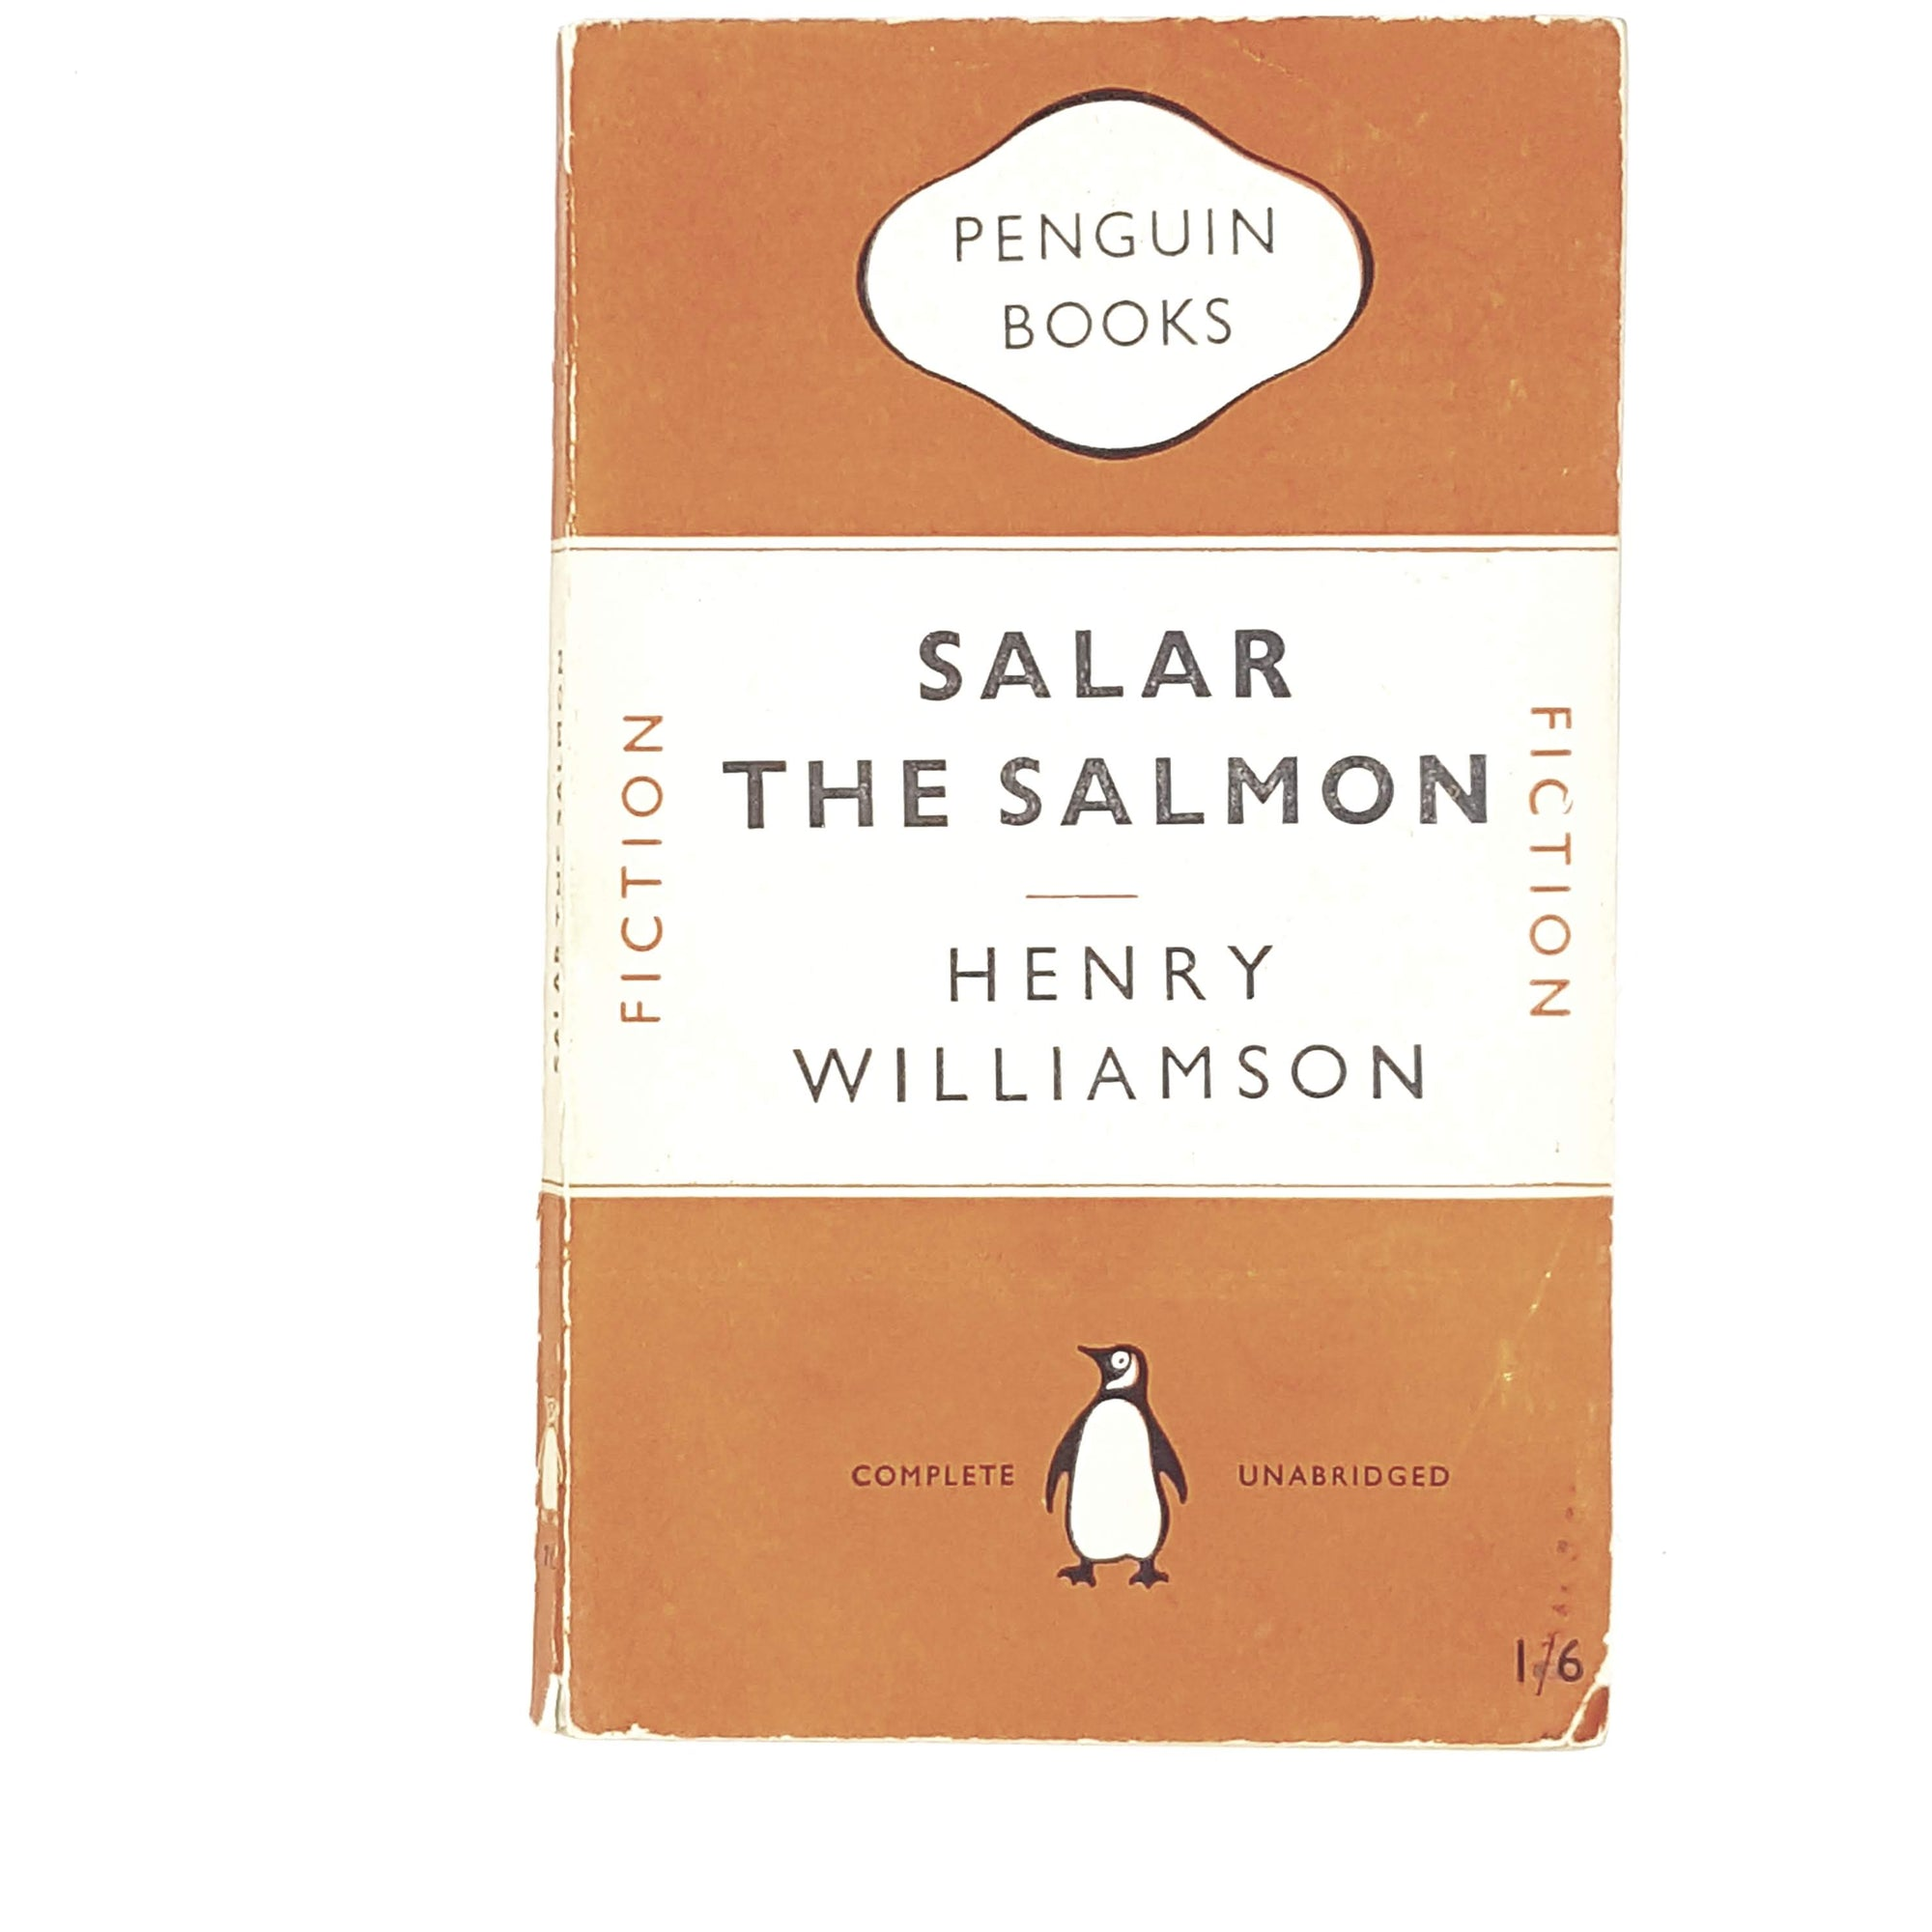 Vintage Penguin Salar The Salmon by Henry Williamson 1949